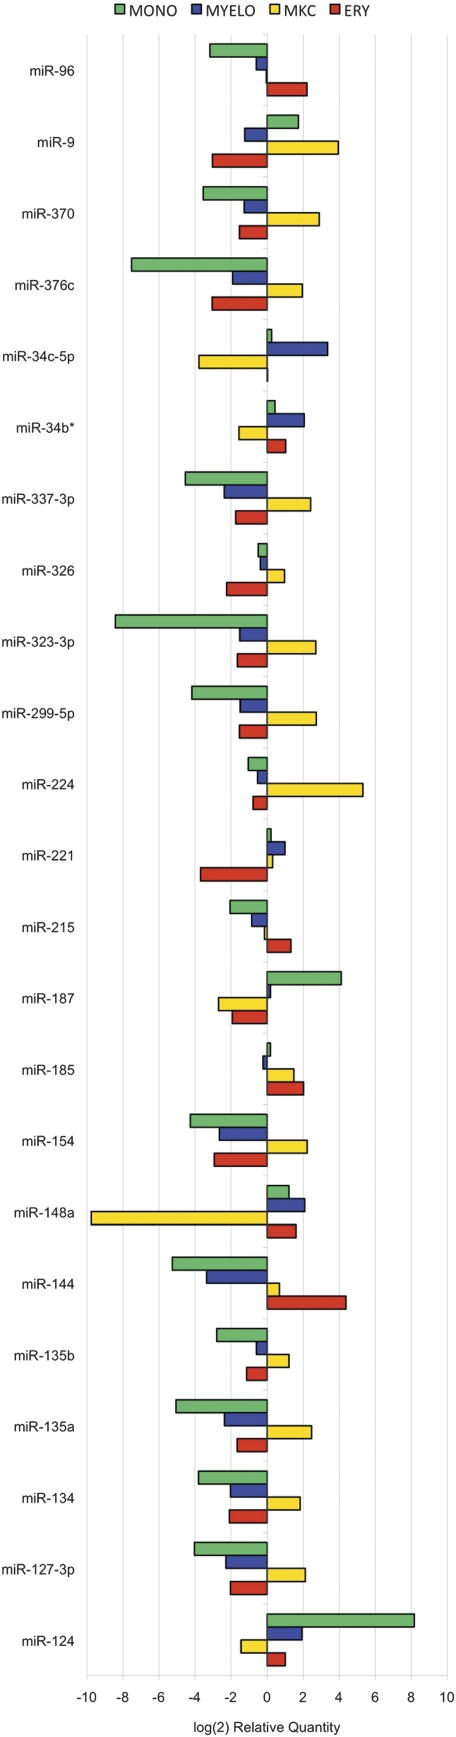 MicroRNAs oppositely regulated during myeloid differentiation. Twenty-three microRNAs (indicated with the prefix miR-) show either up- or downregulation greater than four in at least one precursor population when compared with the CD34 HPCs; 17 showed a significant increased expression with an RQ higher than four, 15 a significant decreased expression with an RQ lower than −4 and concomitantly a counter-regulation in at least one other precursor cell context. TaqMan real-time PCR reactions were carried out using the TaqMan MicroRNA Assays Human Panel Early Access Kit. Delta-delta-CTs and RQs were calculated for each detector using the CD34 HPC sample as the calibrator and hsa-miR-let-7a as the endogenous control